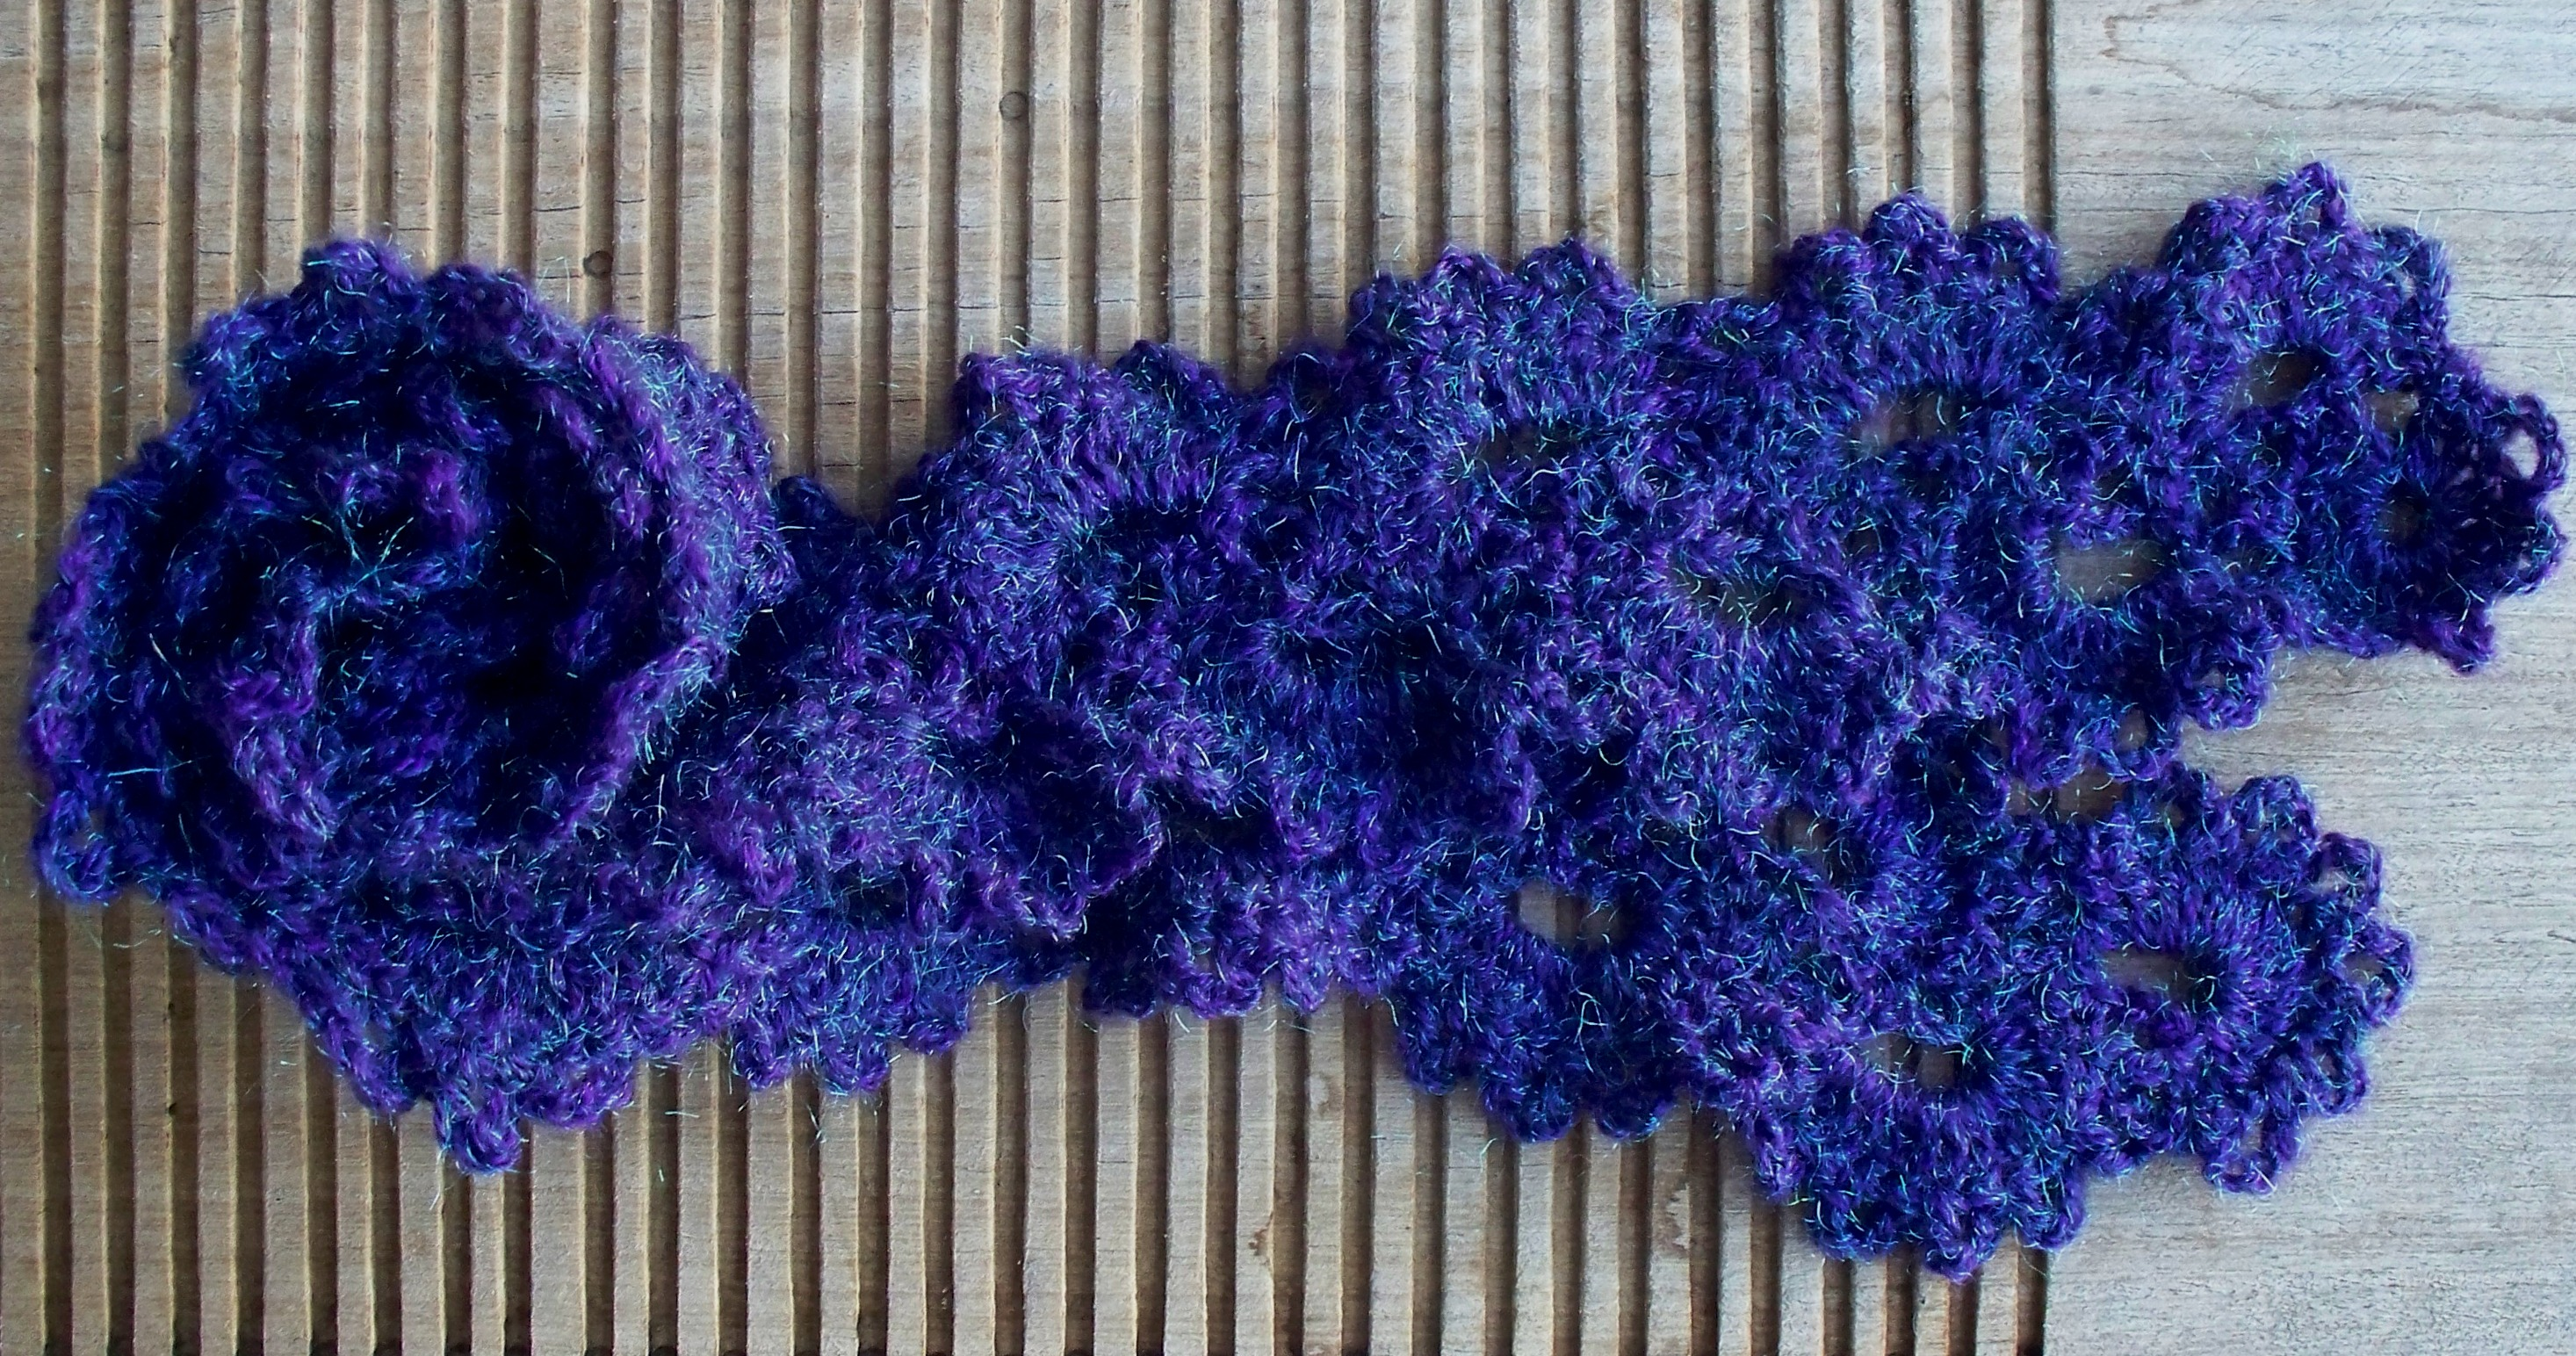 queen anne's lace scarf 4a - rita summers 2013